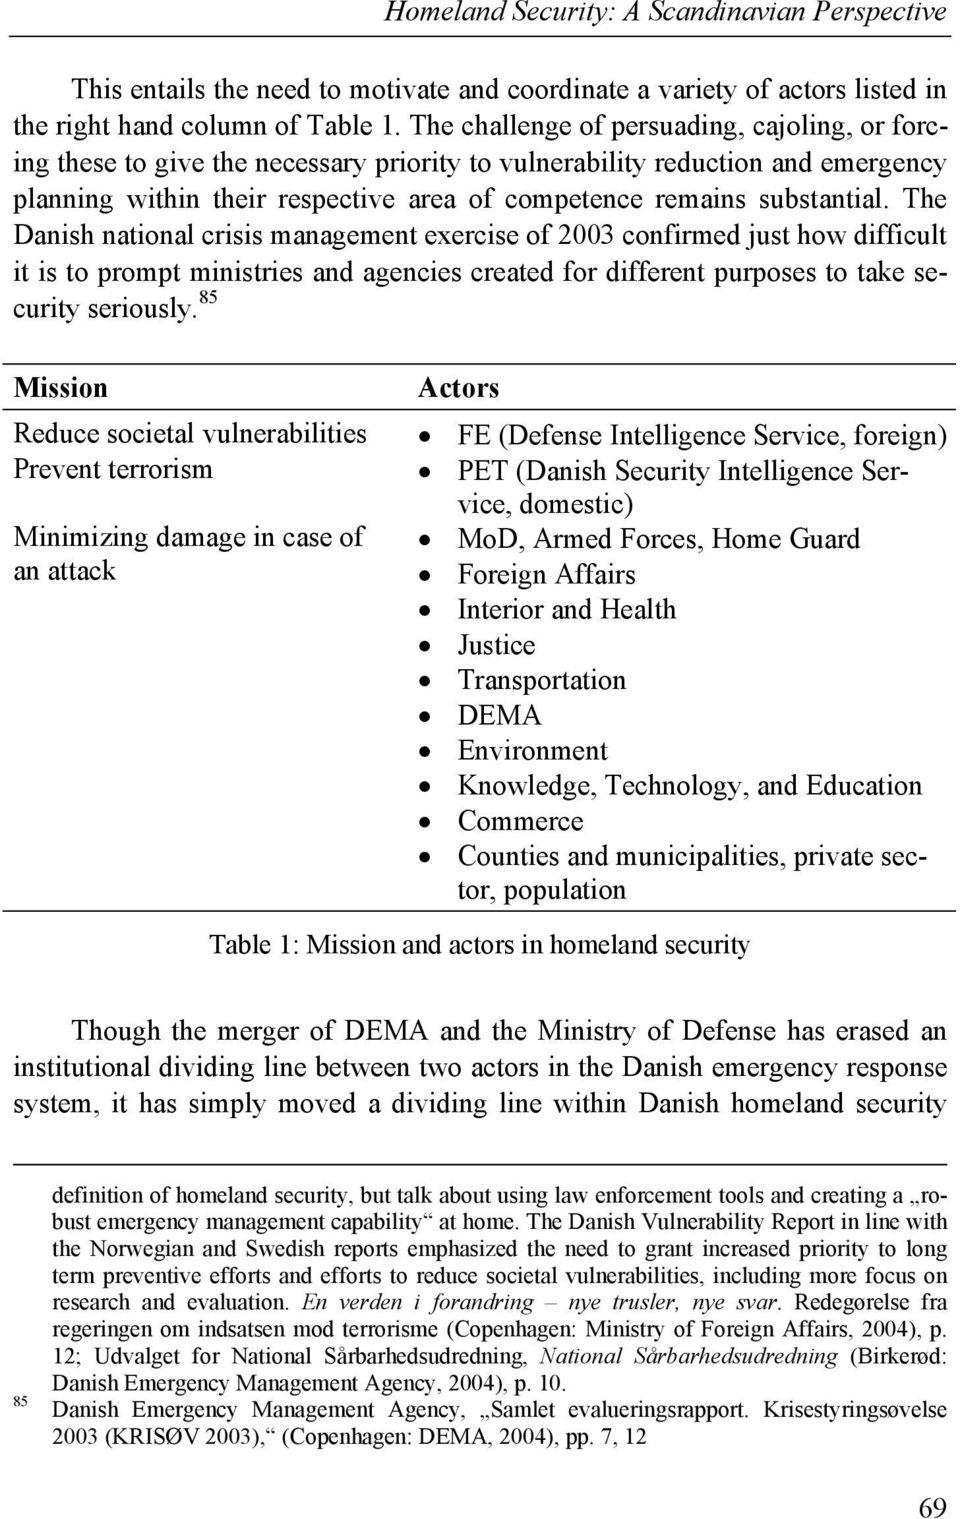 The Danish national crisis management exercise of 2003 confirmed just how difficult it is to prompt ministries and agencies created for different purposes to take security seriously.